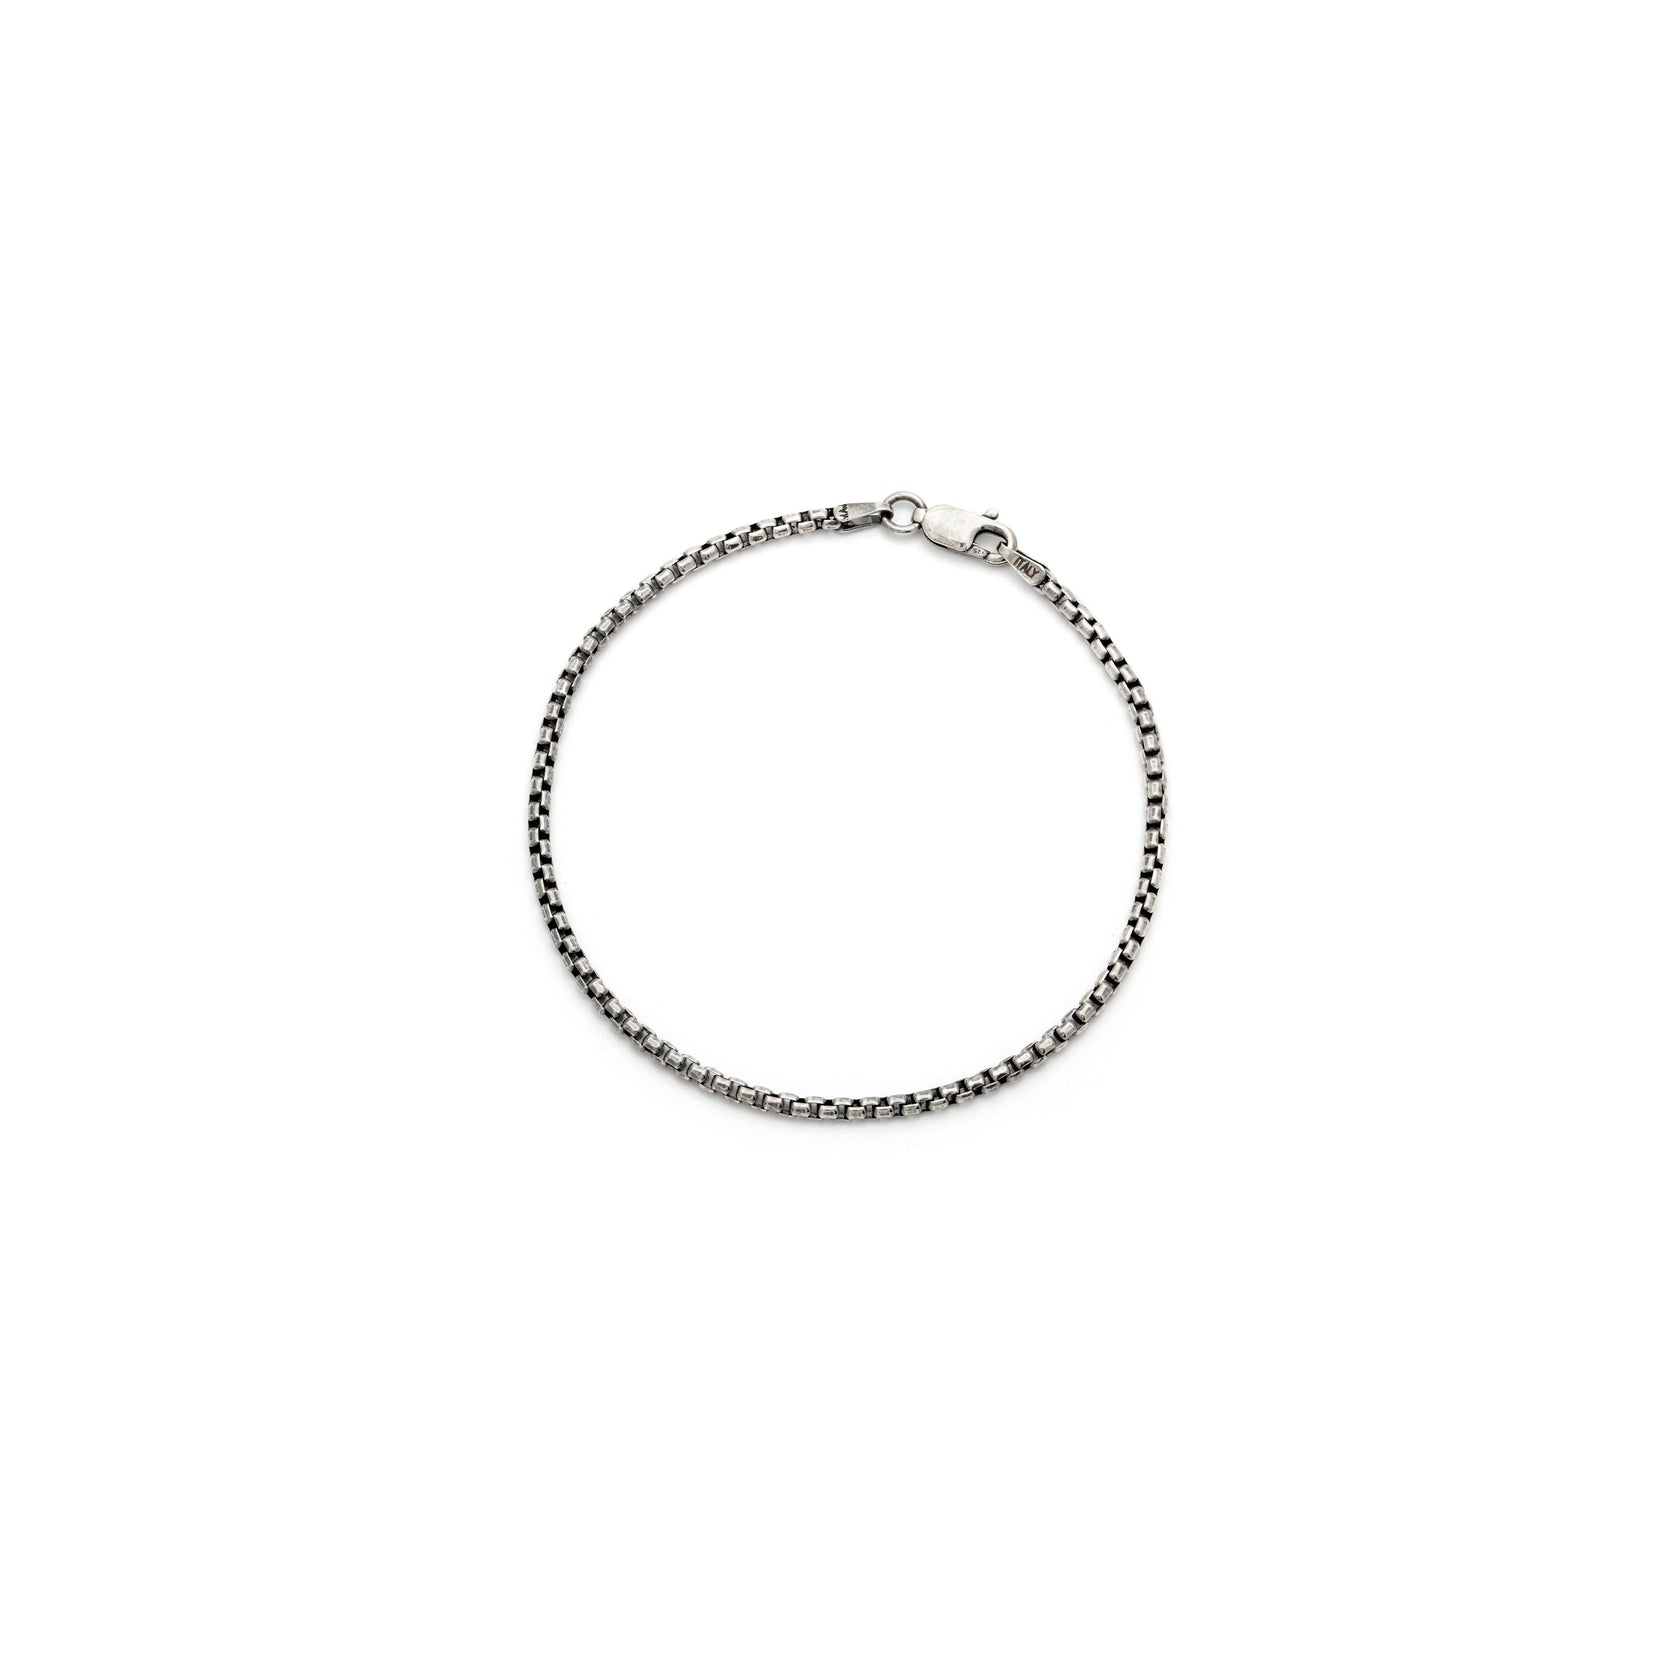 Men's Thick Box Chain Bracelet - Sterling Silver